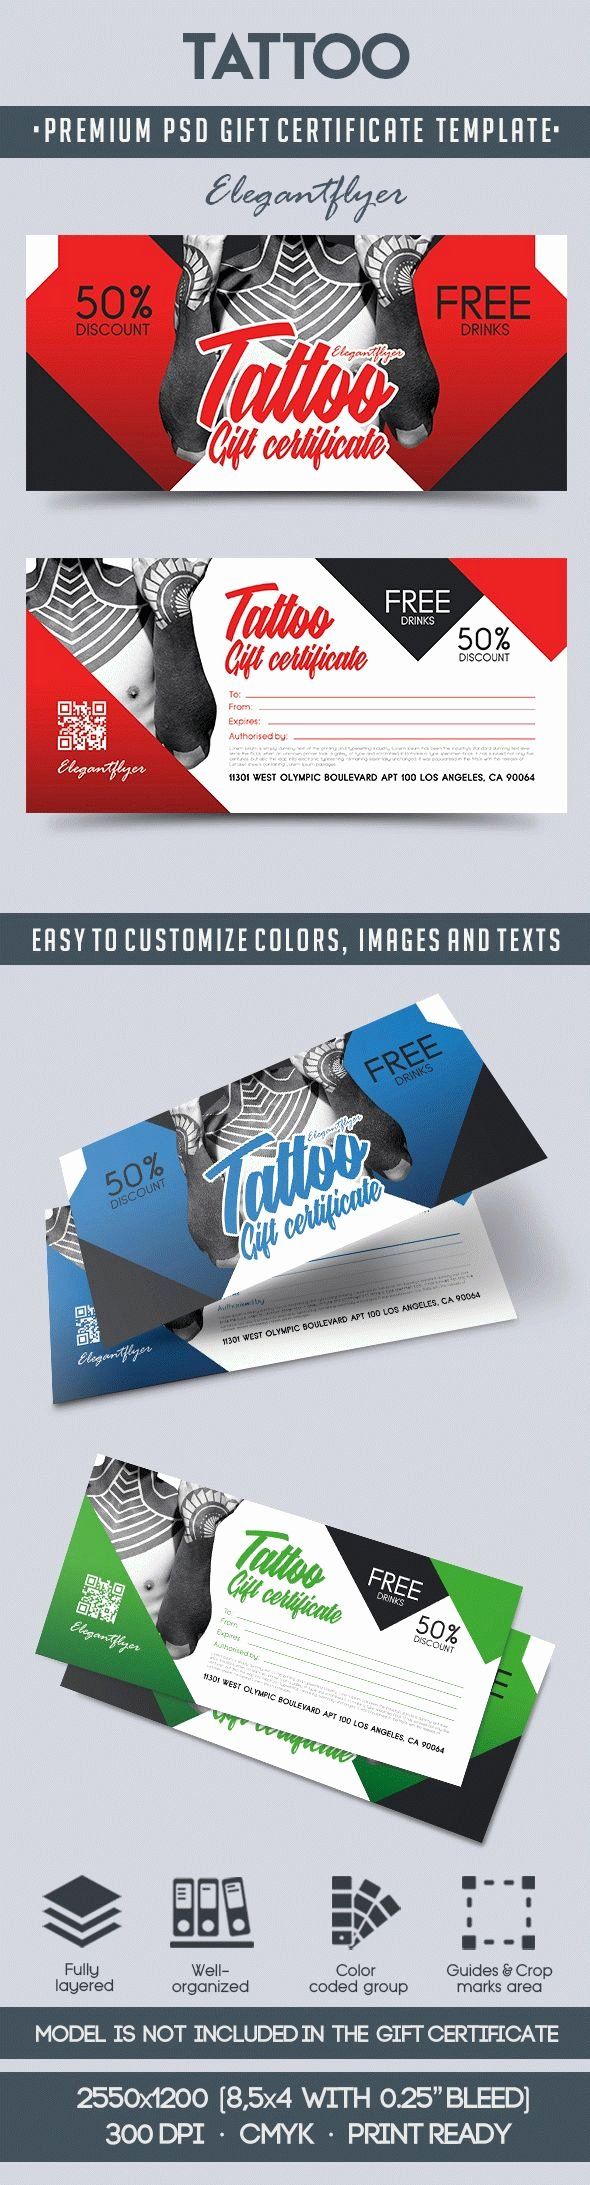 Tattoo Gift Certificate Template Awesome Tattoo Gift Voucher – by Elegantflyer